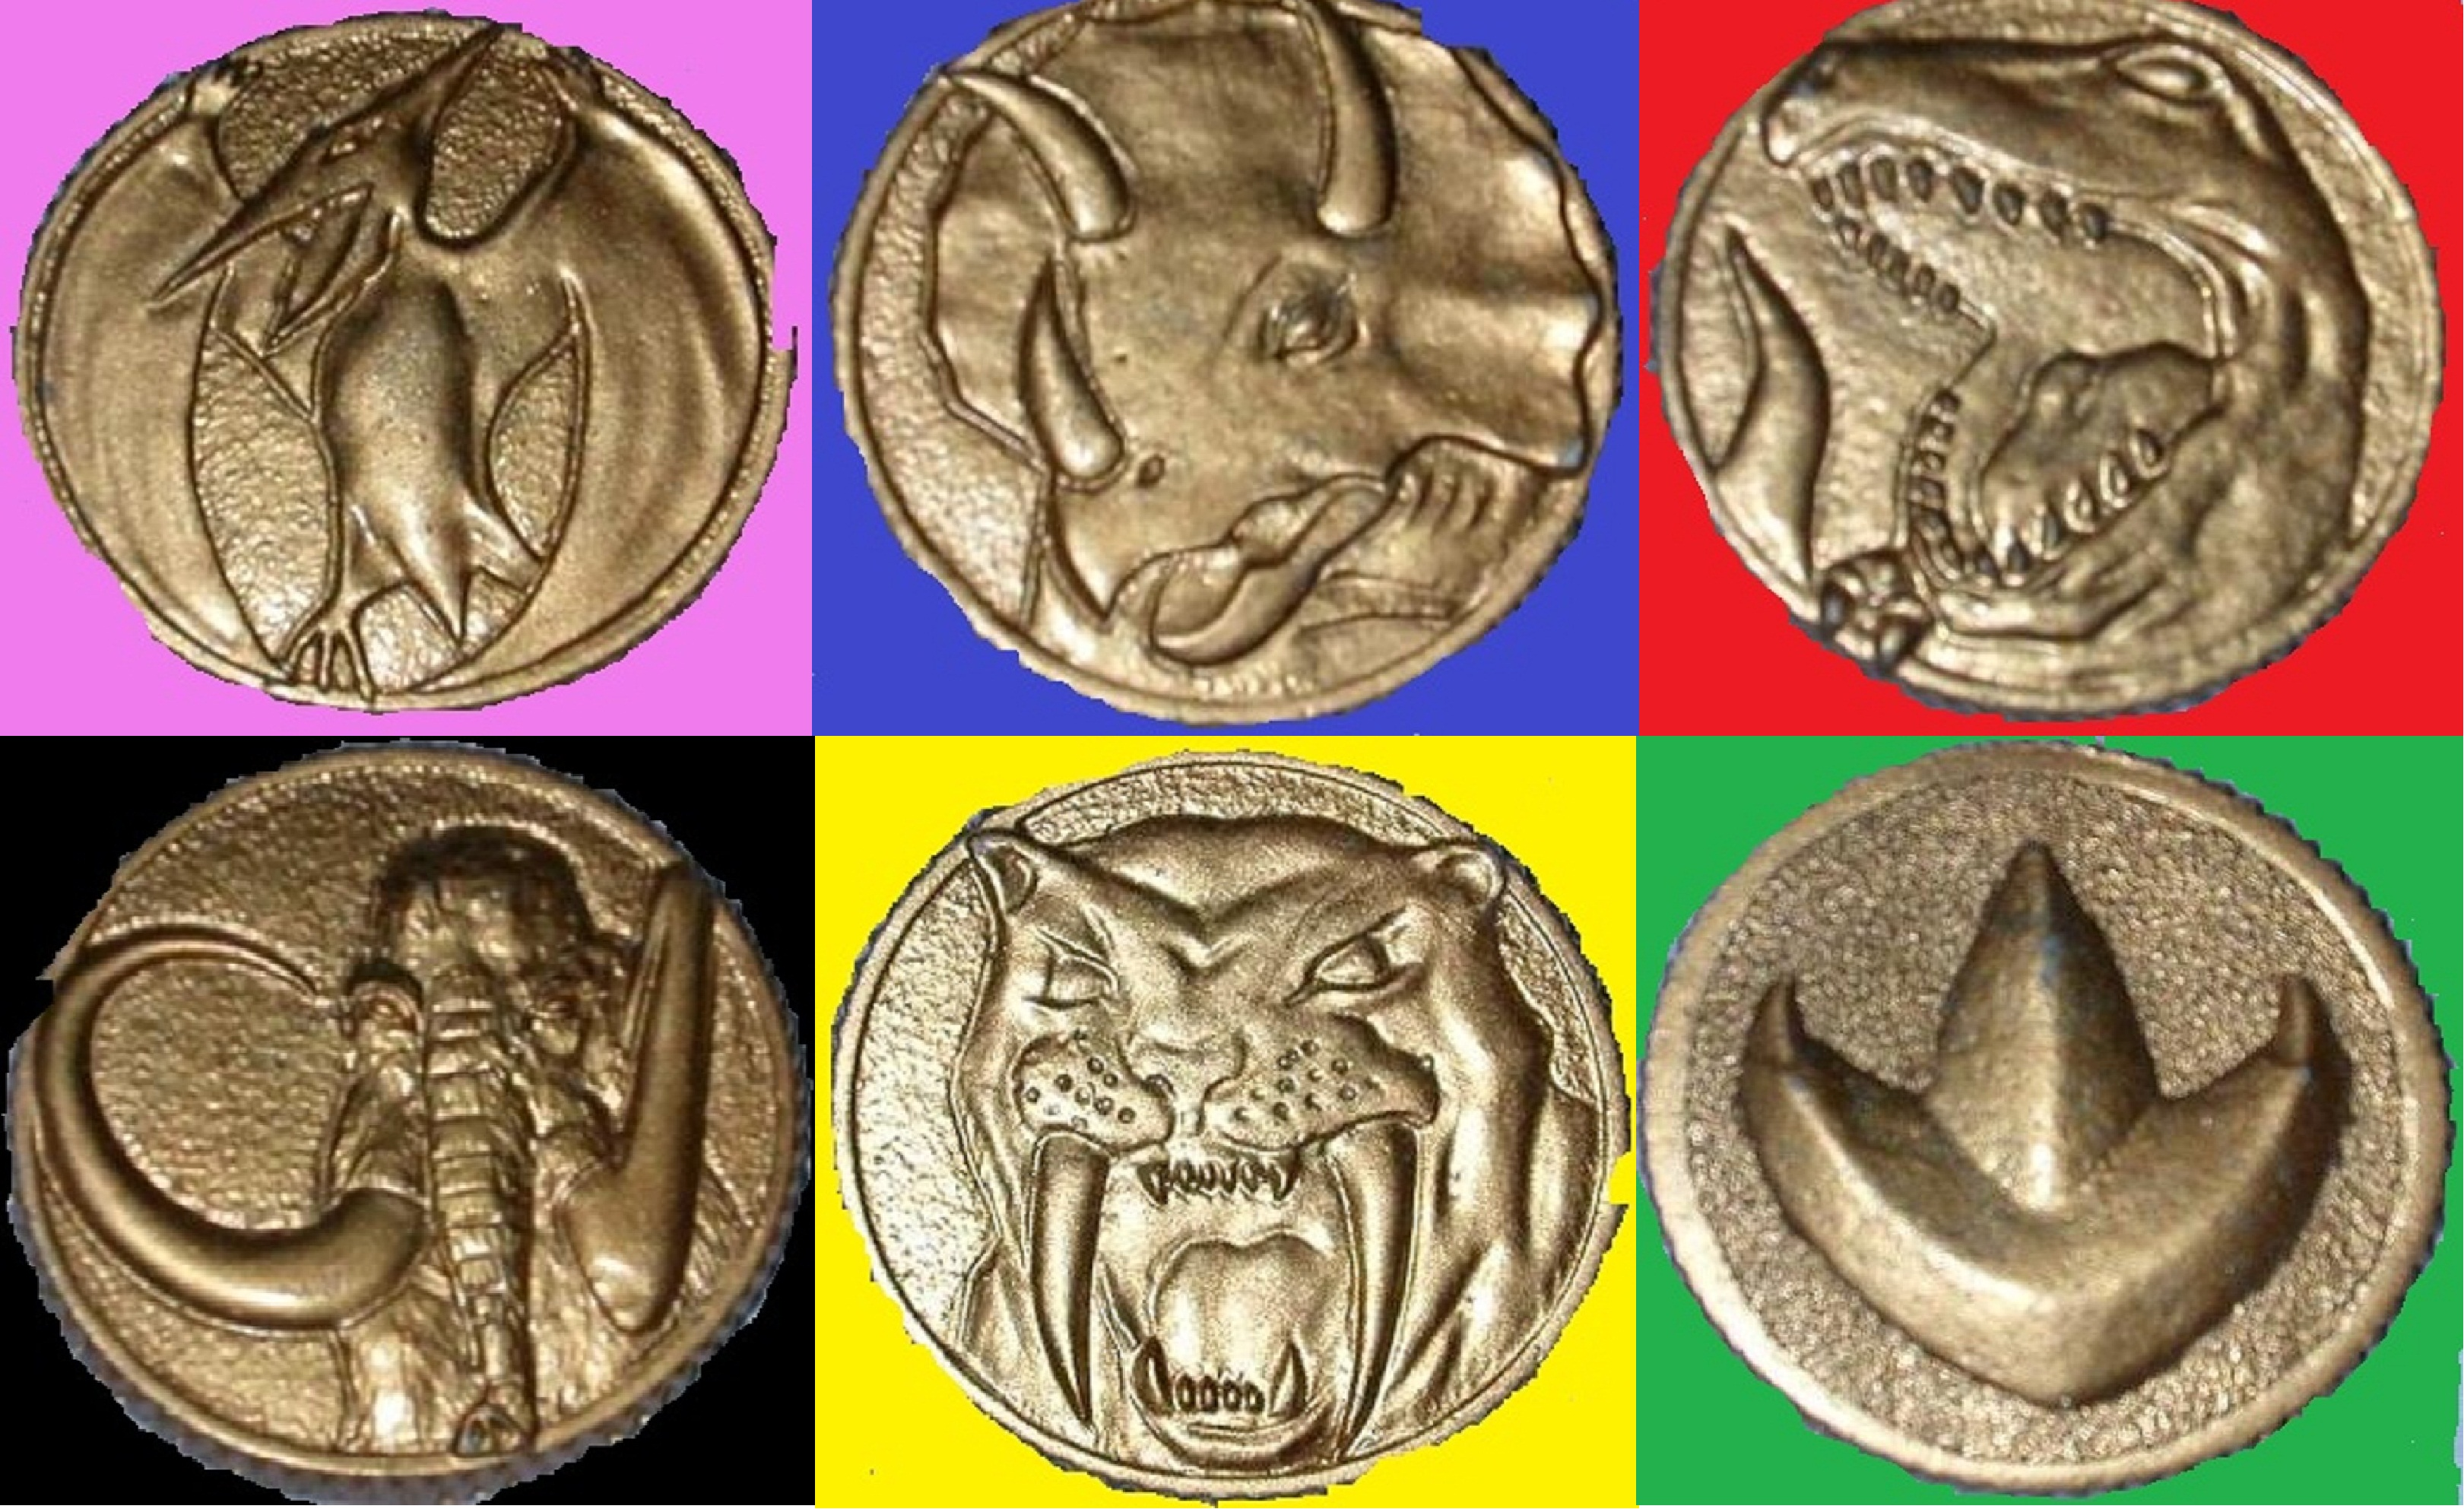 Mighty Morphin Power Rangers Coins